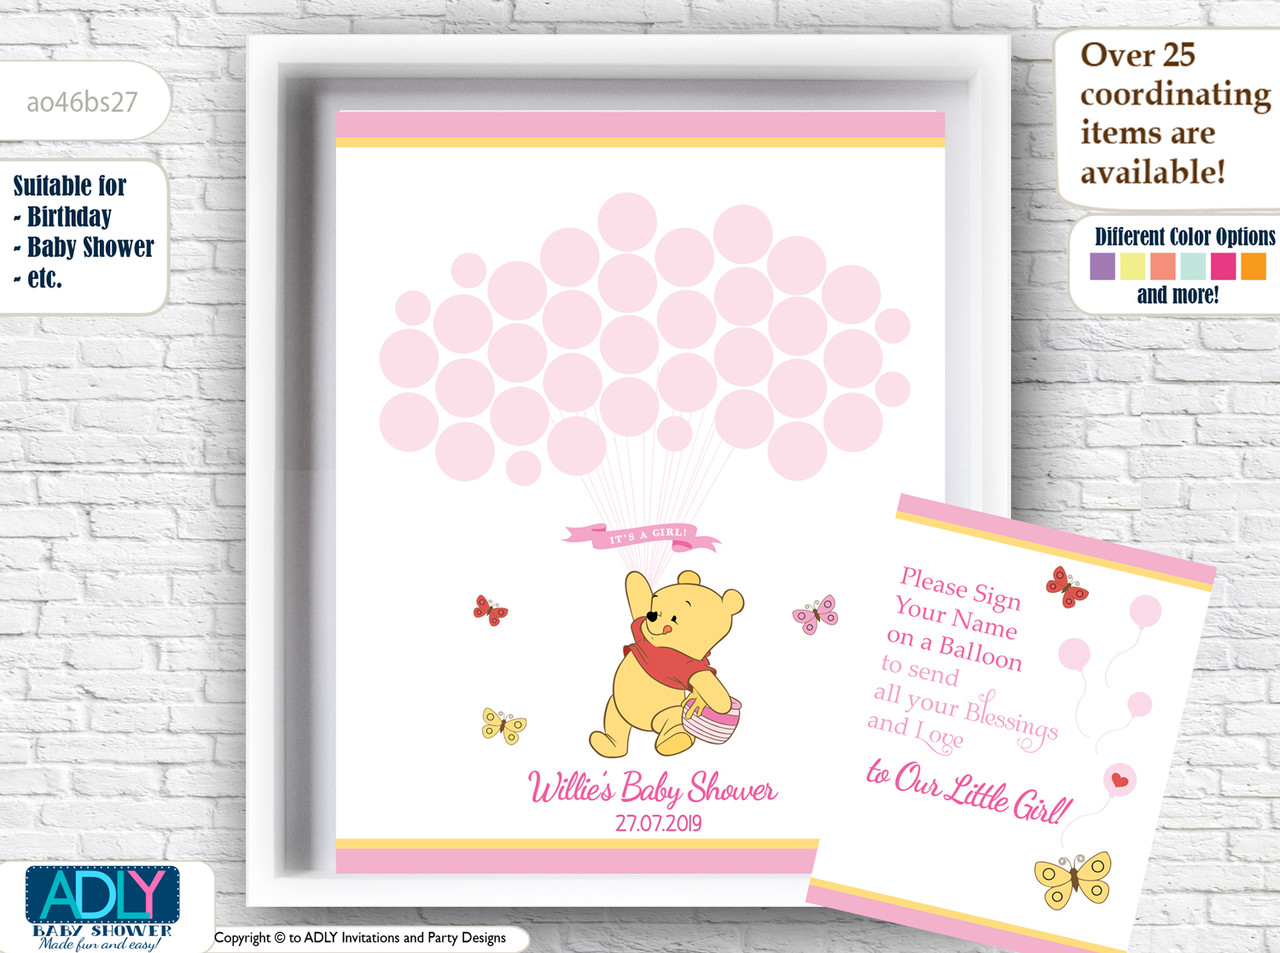 winnie the pooh baby shower guestbook for baby girl winnie the pooh baby shower pritnables birthday printables in pink and yellow